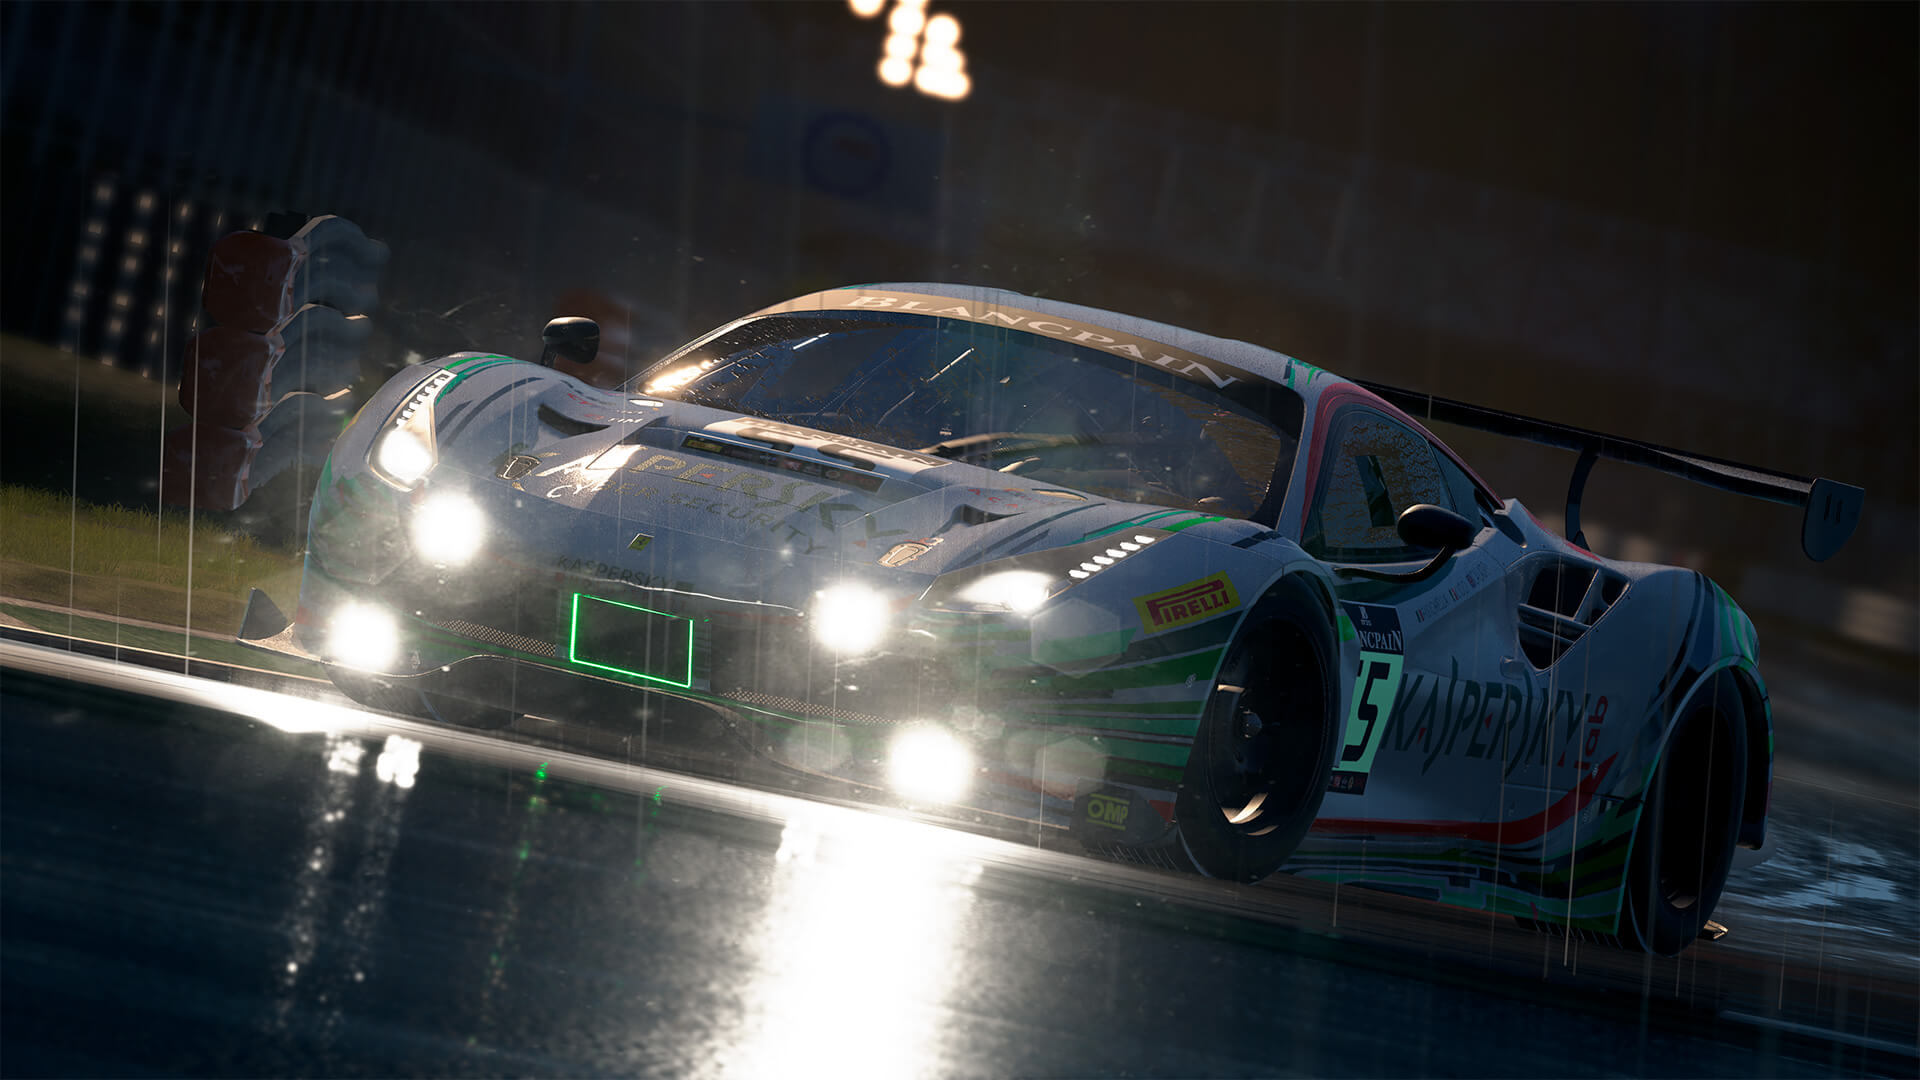 https://www.assettocorsa.net/competizione/wp-content/uploads/screen-6-Gallery01.jpg